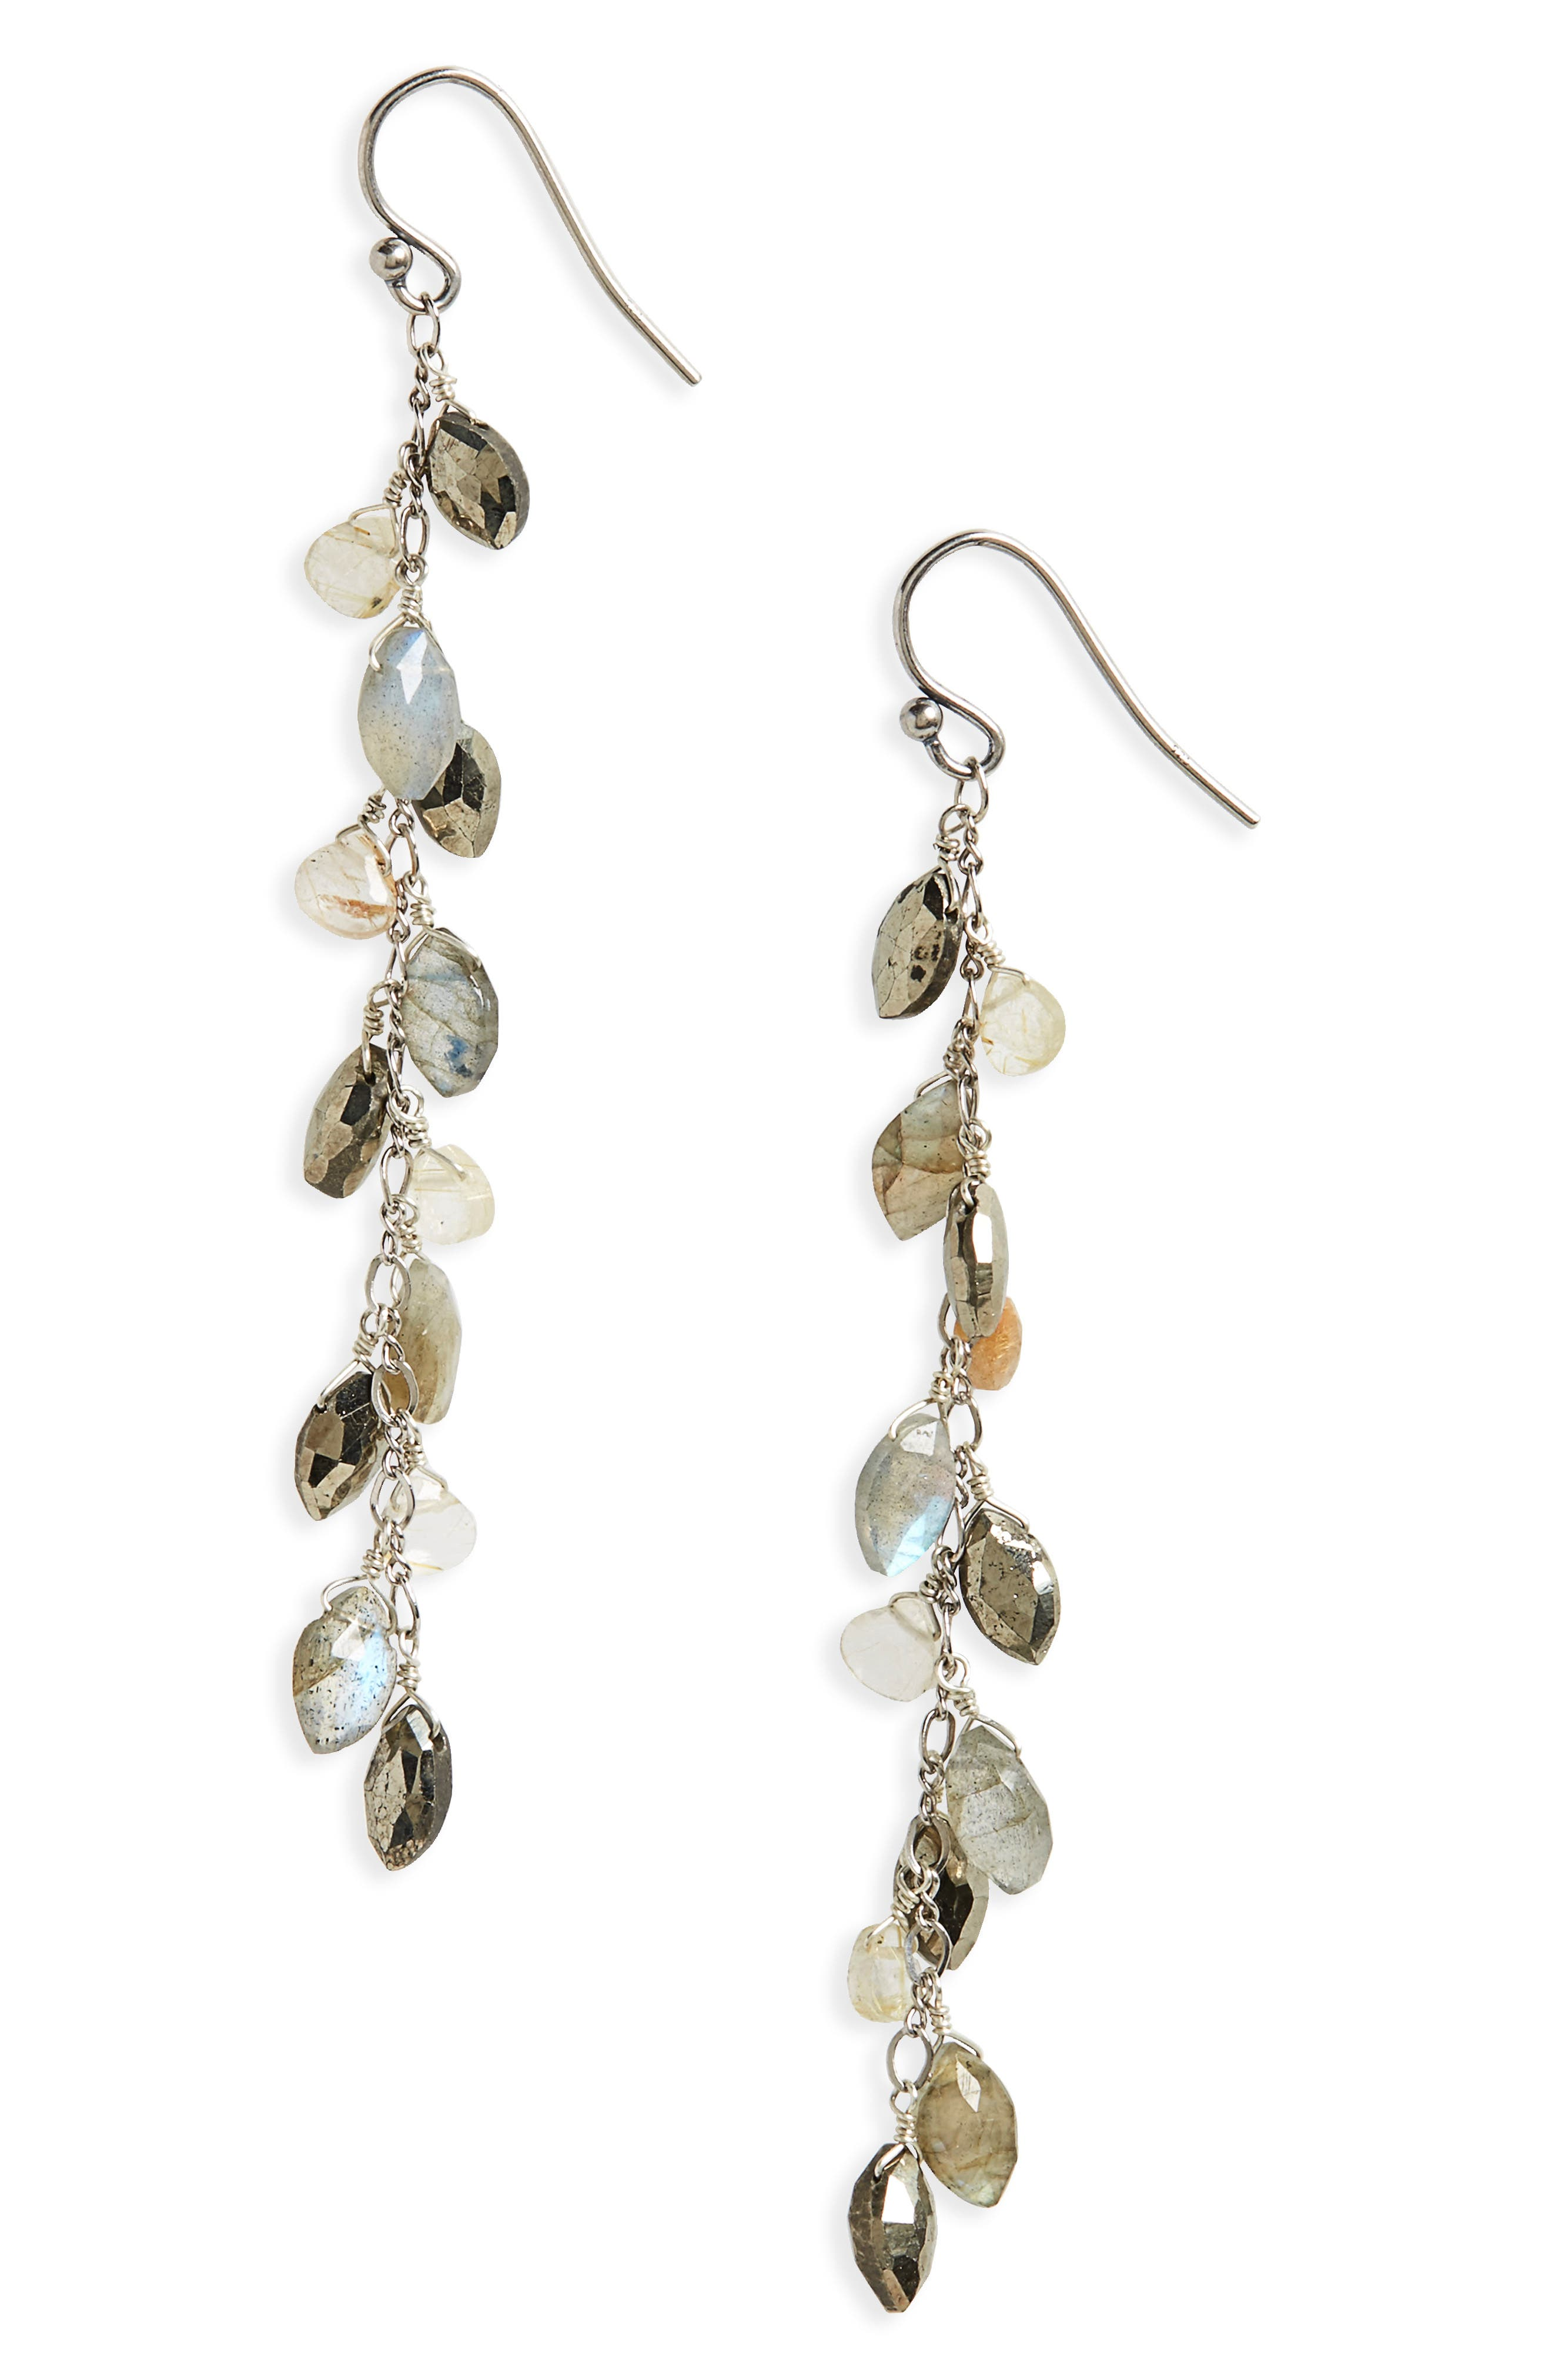 Semiprecious Stone Sterling Silver Drop Earrings,                             Main thumbnail 1, color,                             041